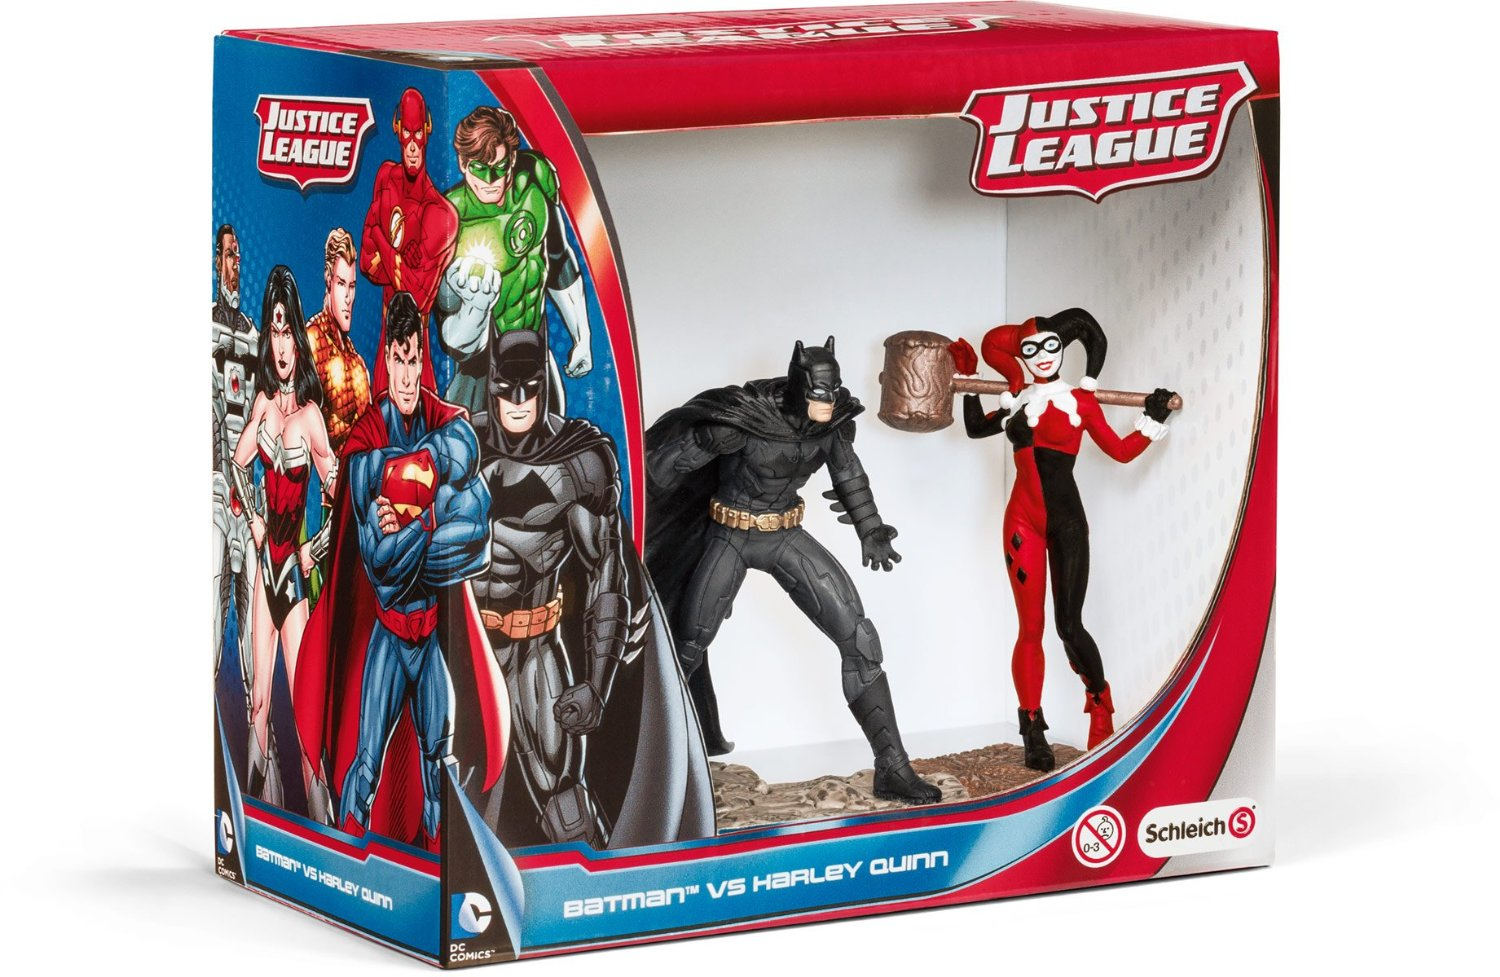 Schleich 22514 Batman vs Harley Quinn Scenery Pack